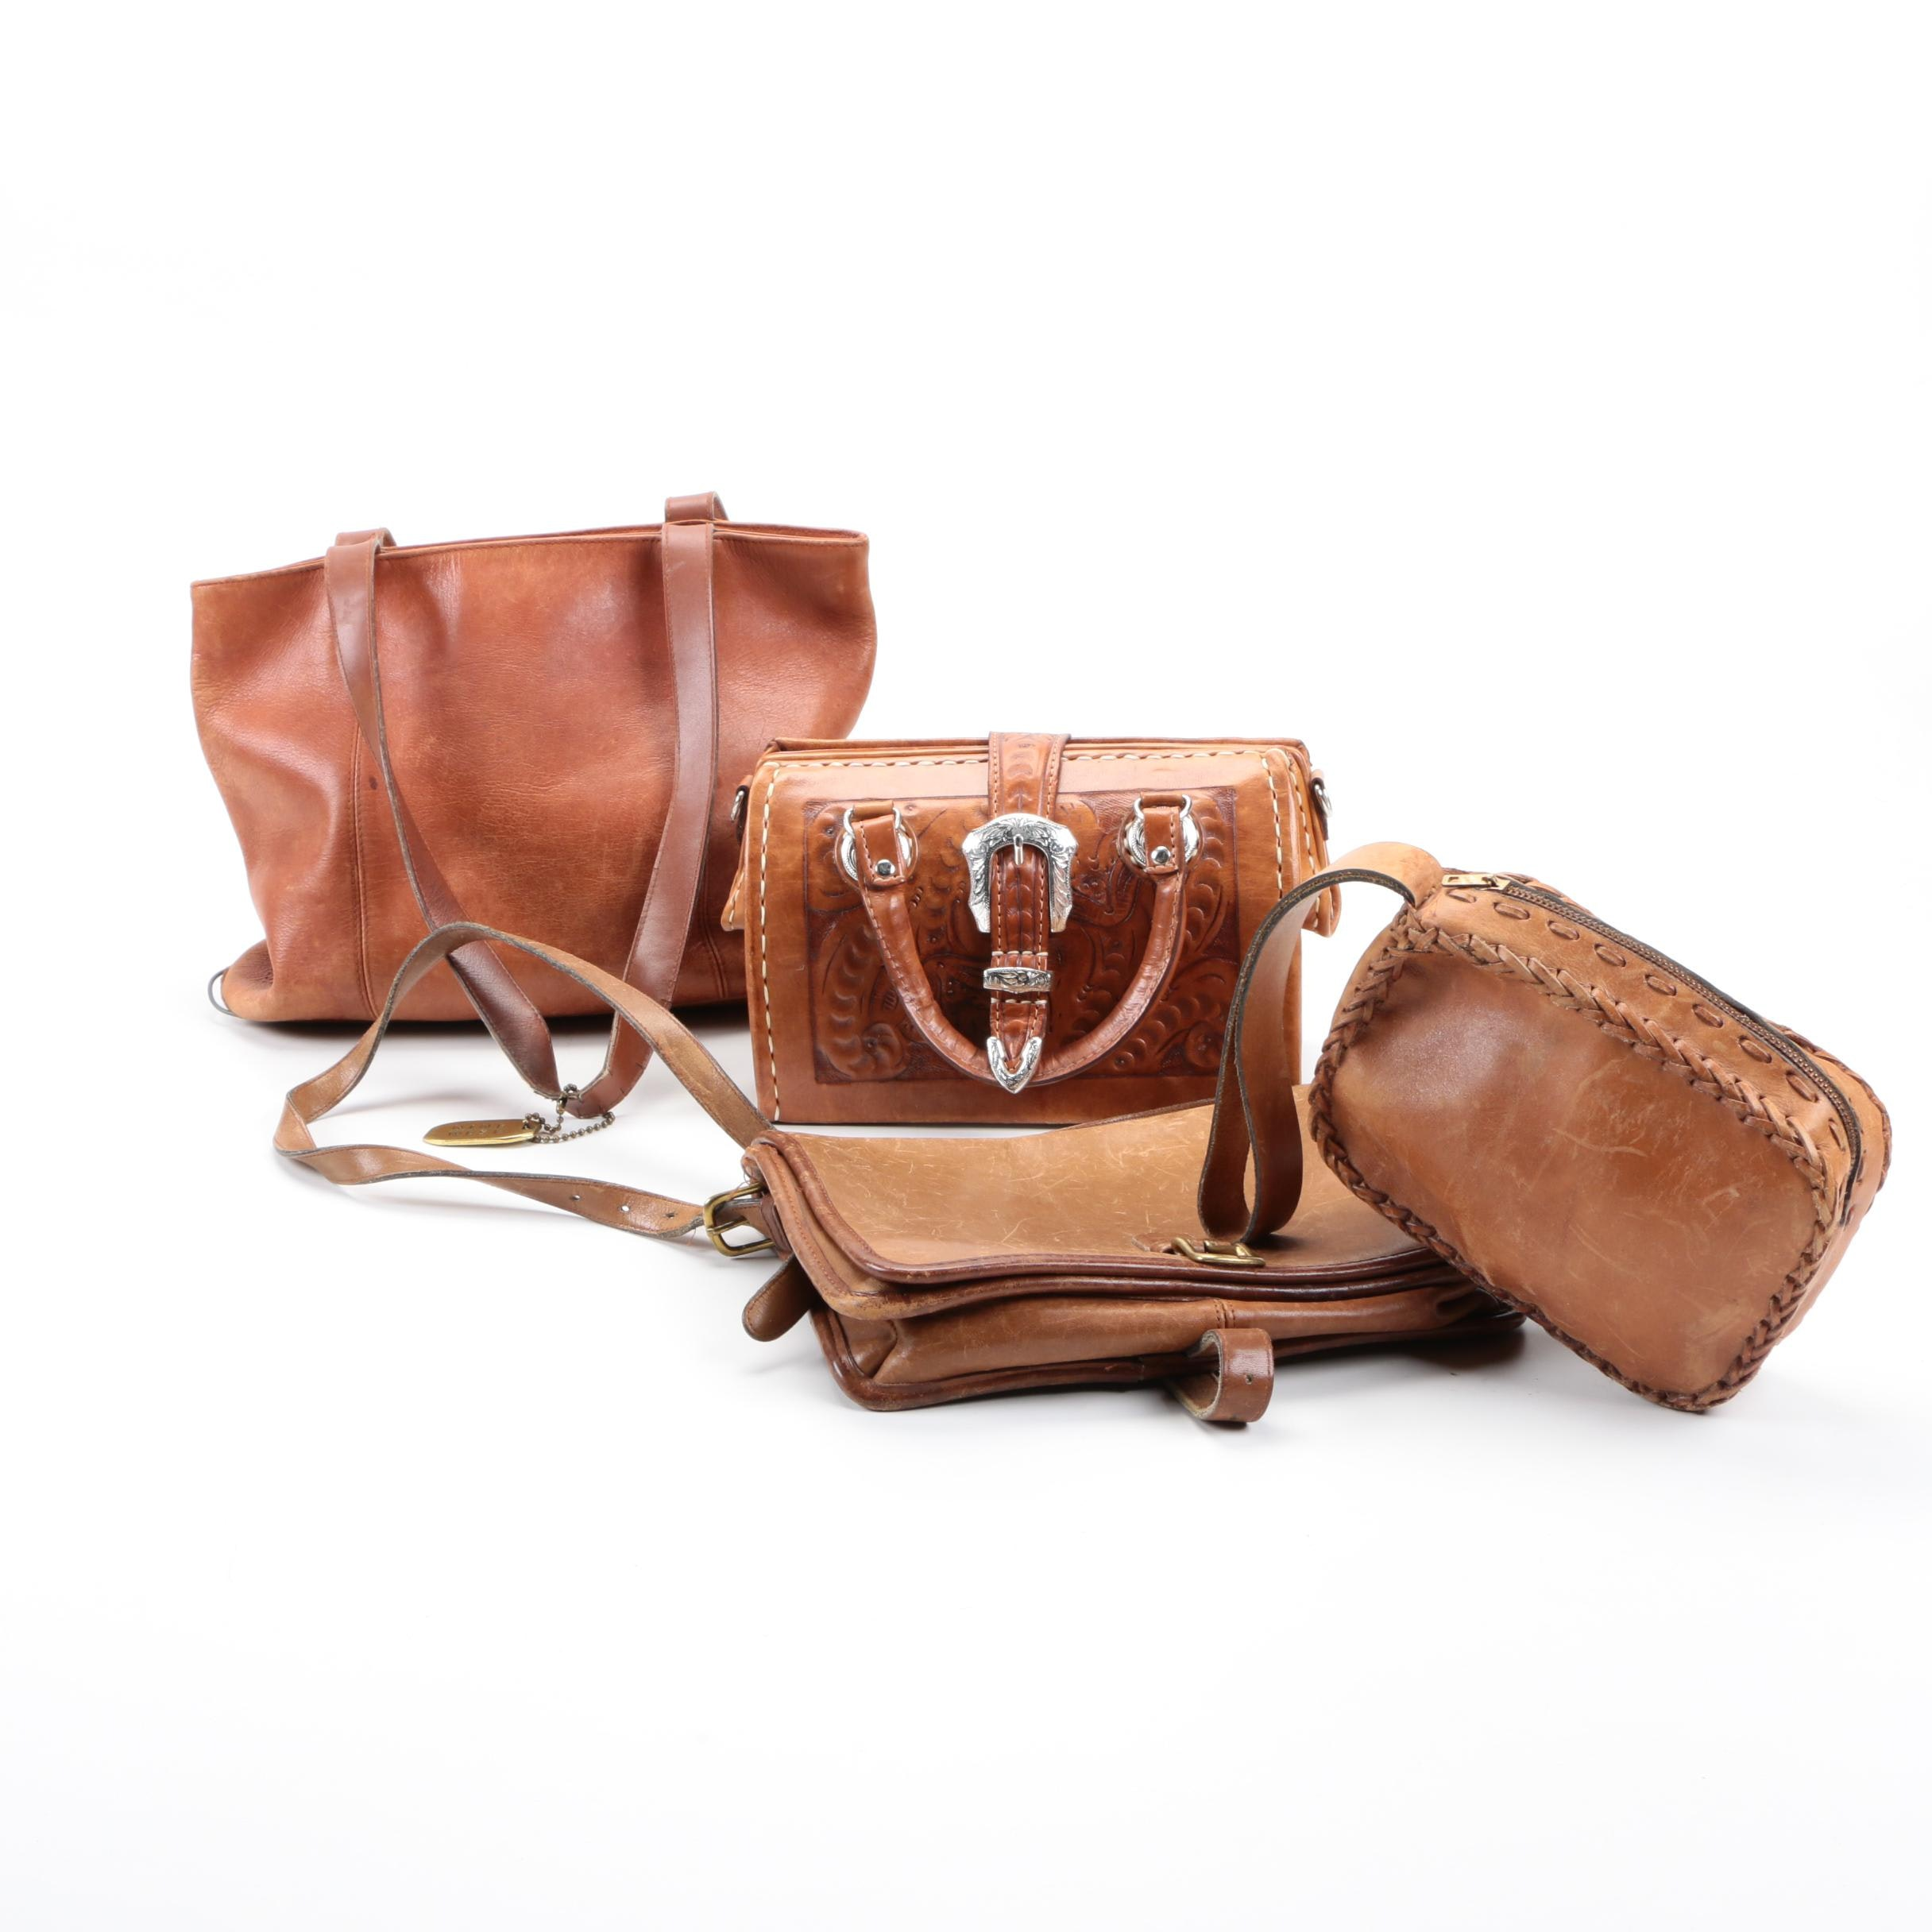 Brown Leather Handbags Including Vintage Coach